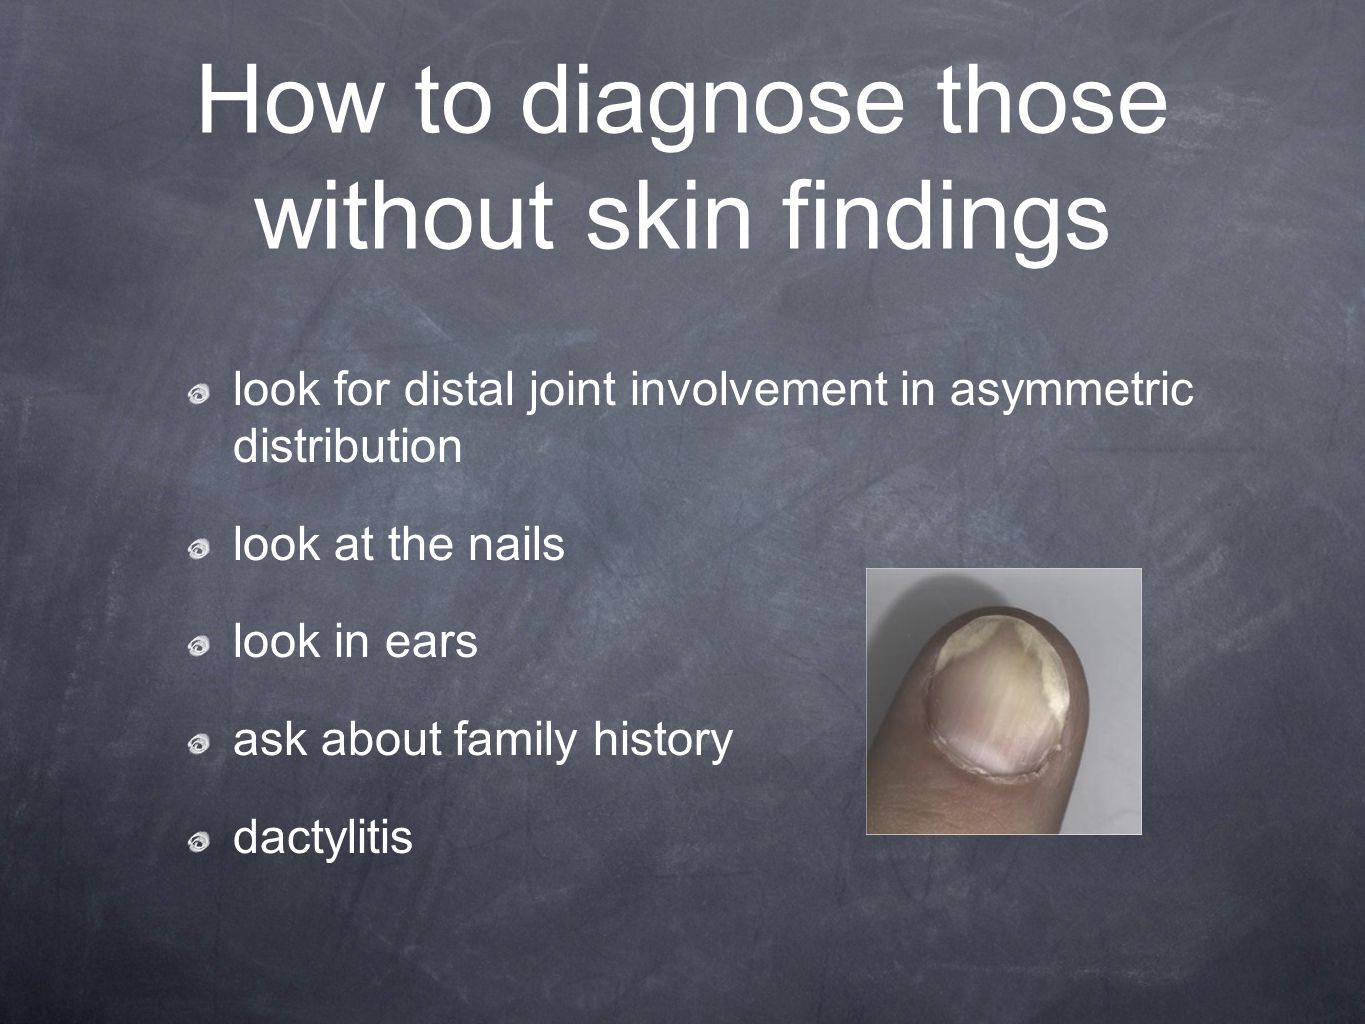 How to diagnose those without skin findings